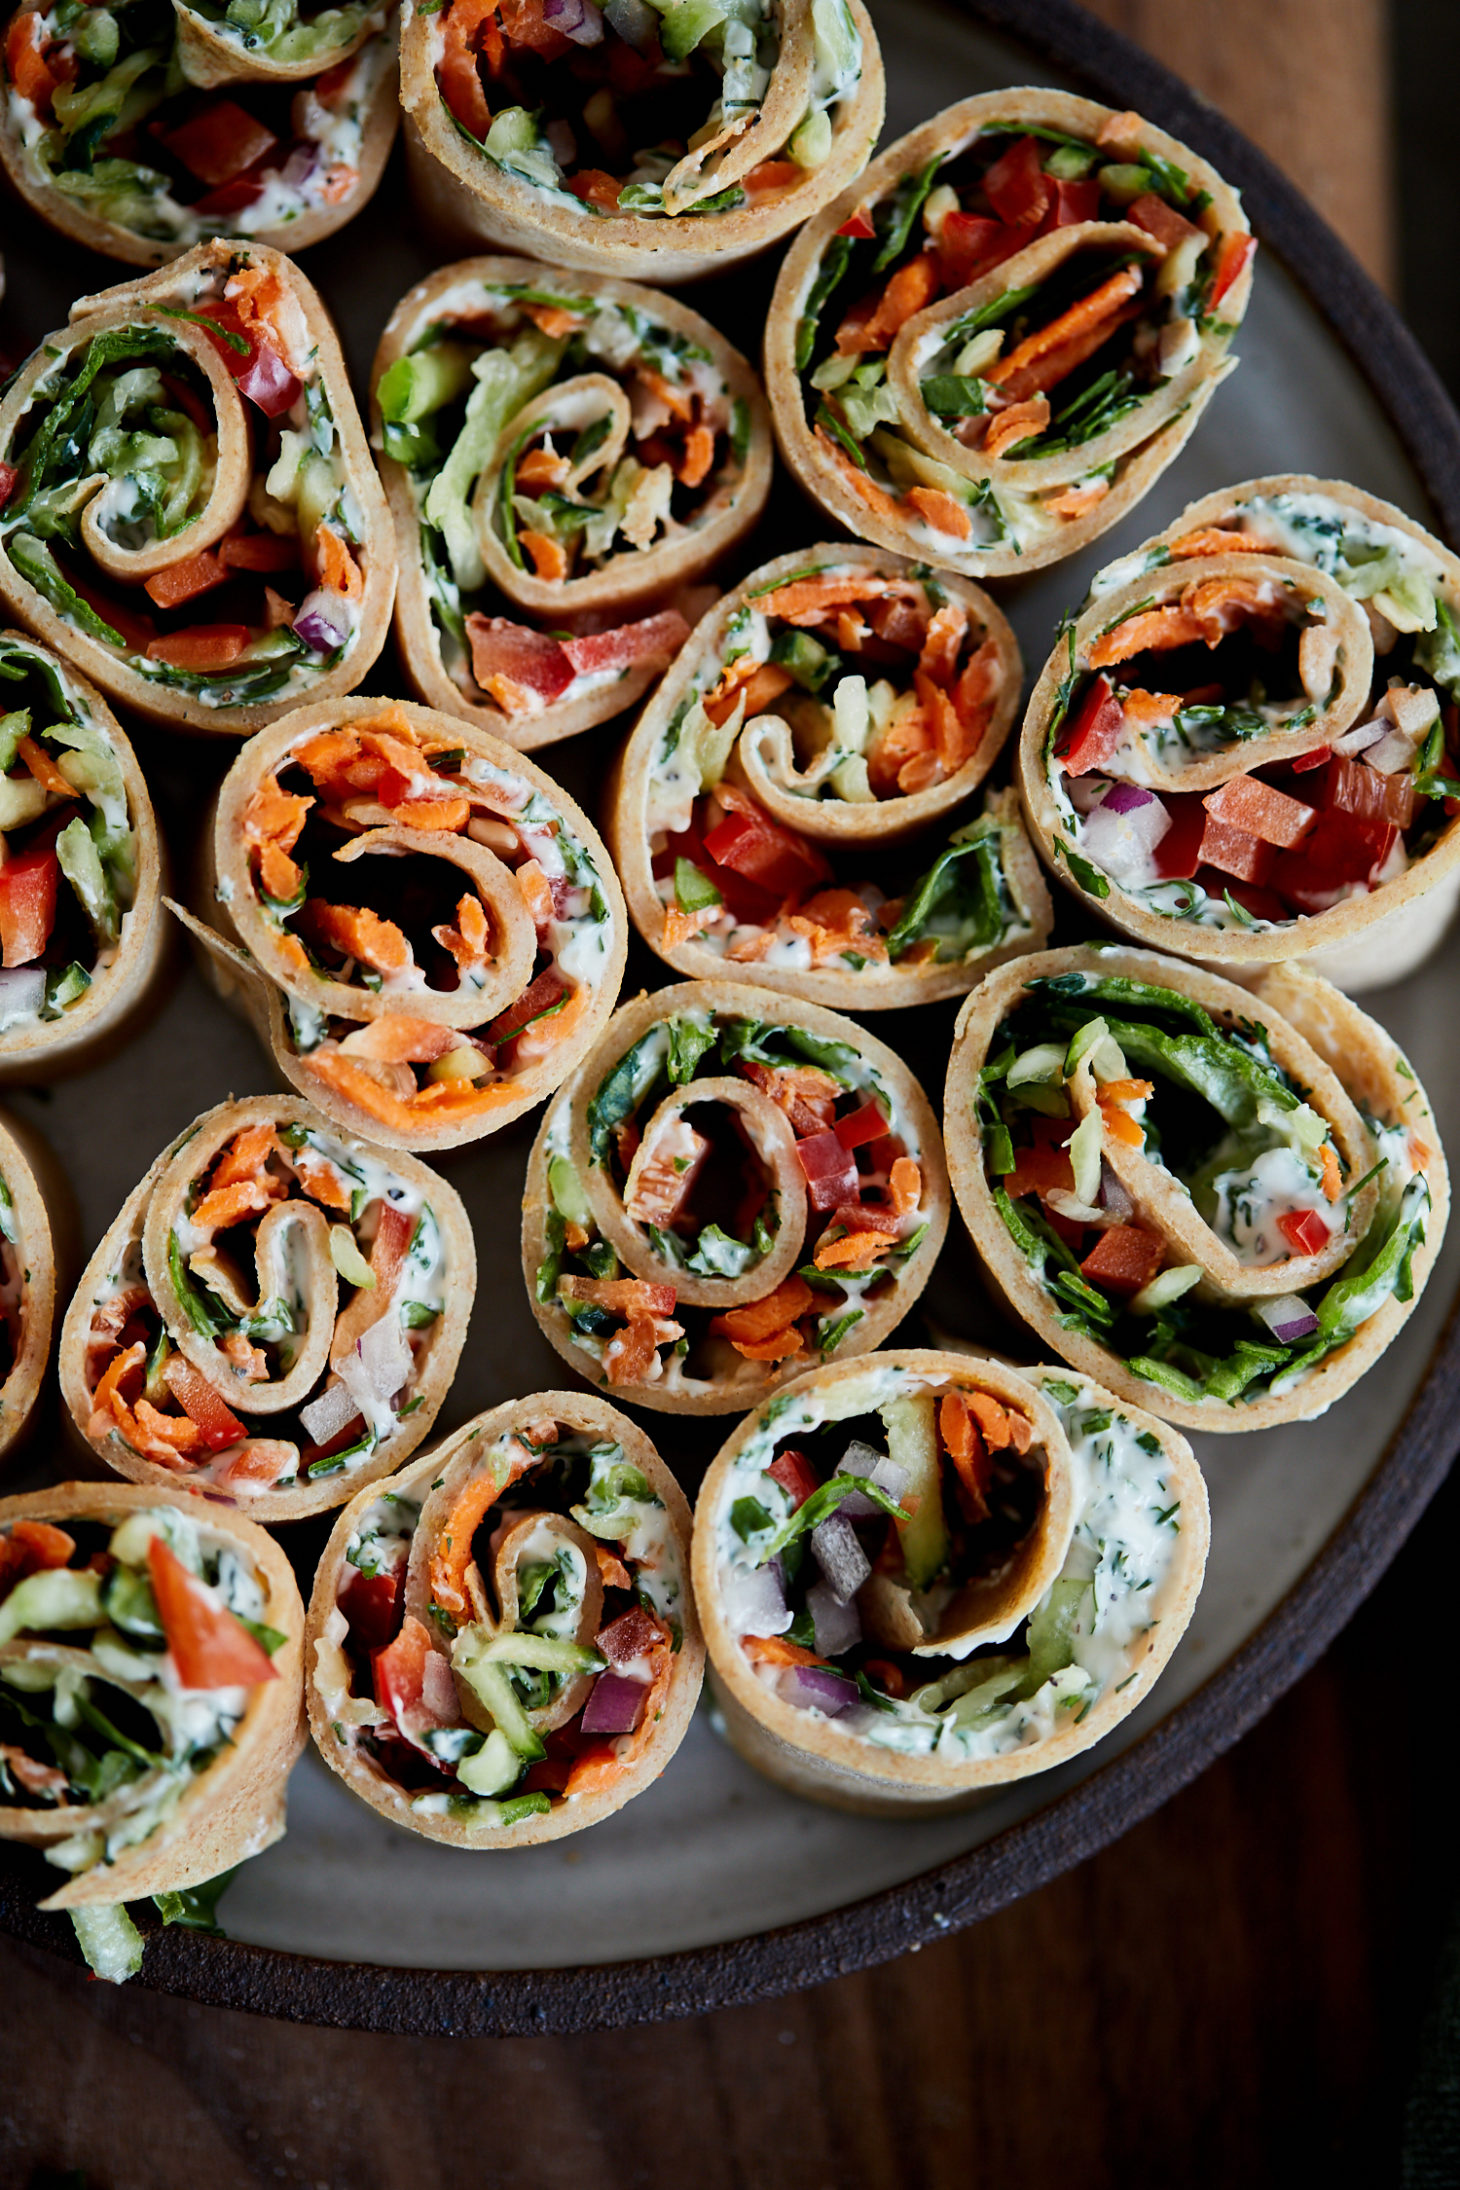 Cream Cheese Roll-ups with Crepes and Vegetables